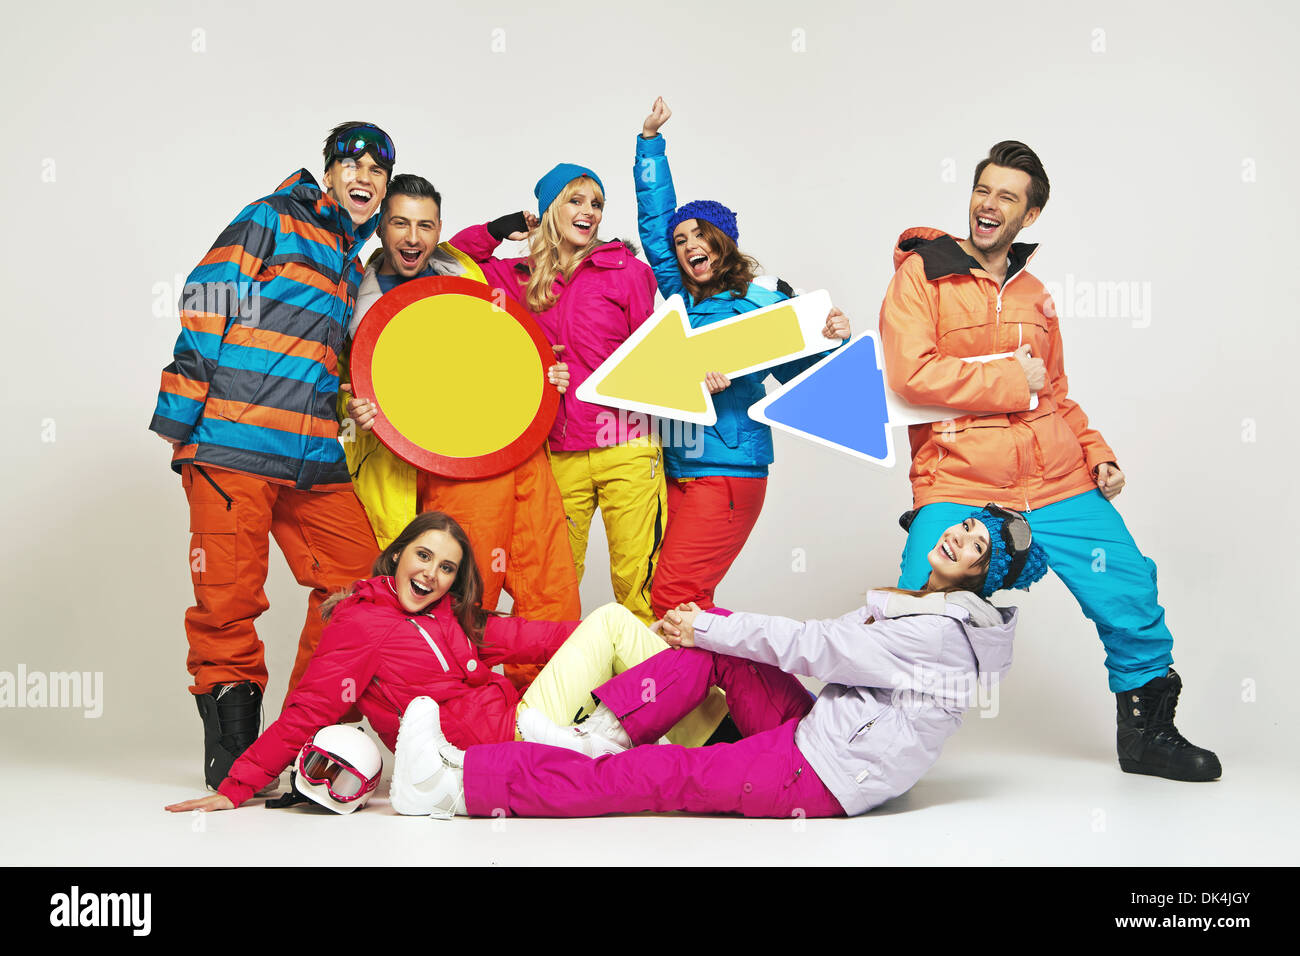 Colorful photo of the glad young snowboarders - Stock Image